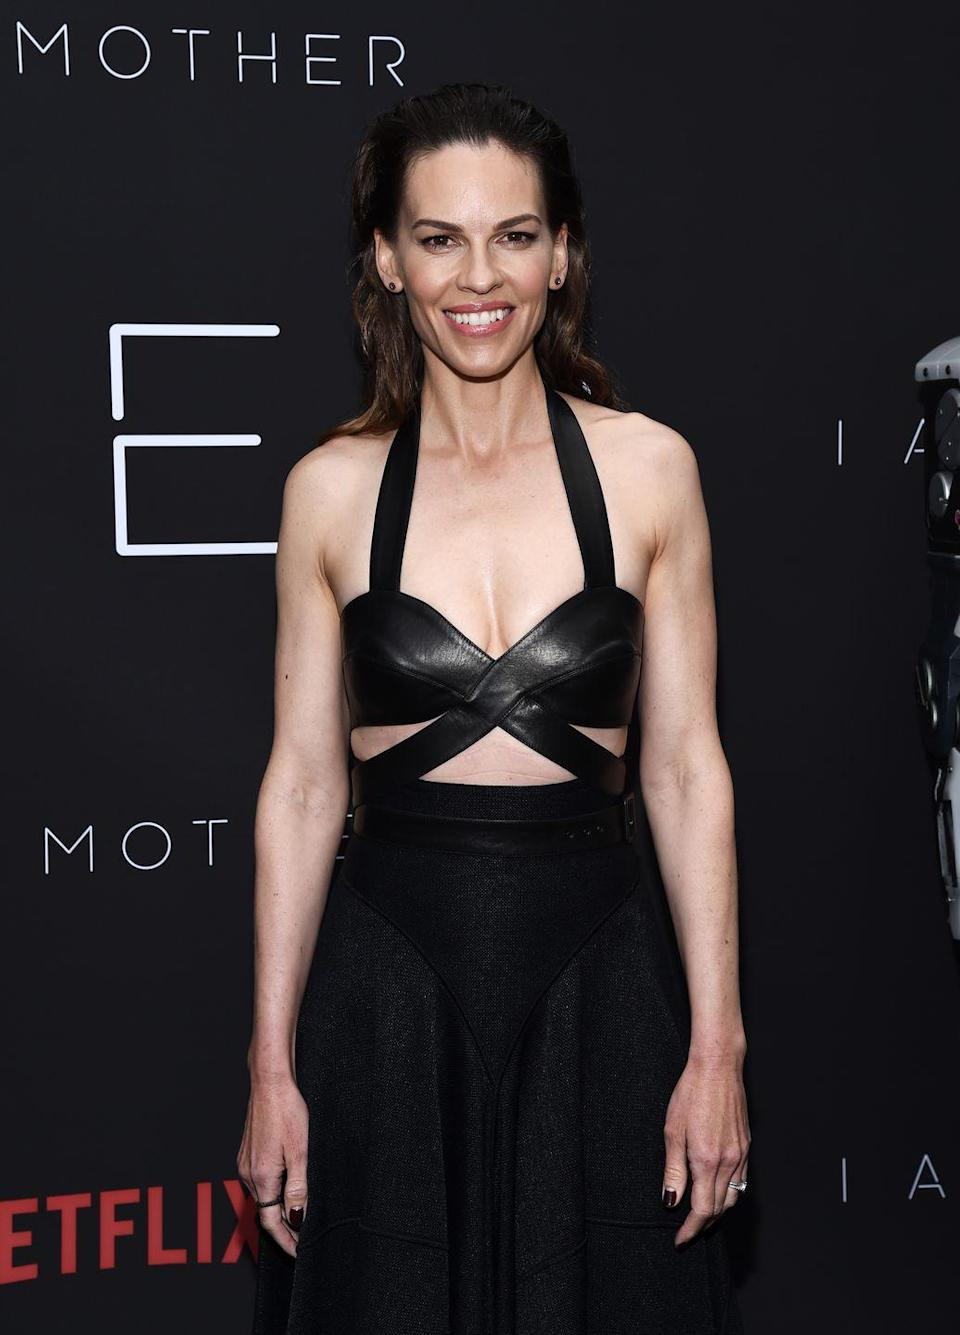 "<p>The <em>Million Dollar Baby </em>star has a very healthy relationship with exercise. The 45-year-old actress sets realistic goals and takes some days off, but she also ventures outside of her comfort zone, according to <em><a href=""https://www.womenshealth.com.au/hilary-swank-strength-workout-instagram"" rel=""nofollow noopener"" target=""_blank"" data-ylk=""slk:Women's Health Australia"" class=""link rapid-noclick-resp"">Women's Health Australia</a></em>. </p>"